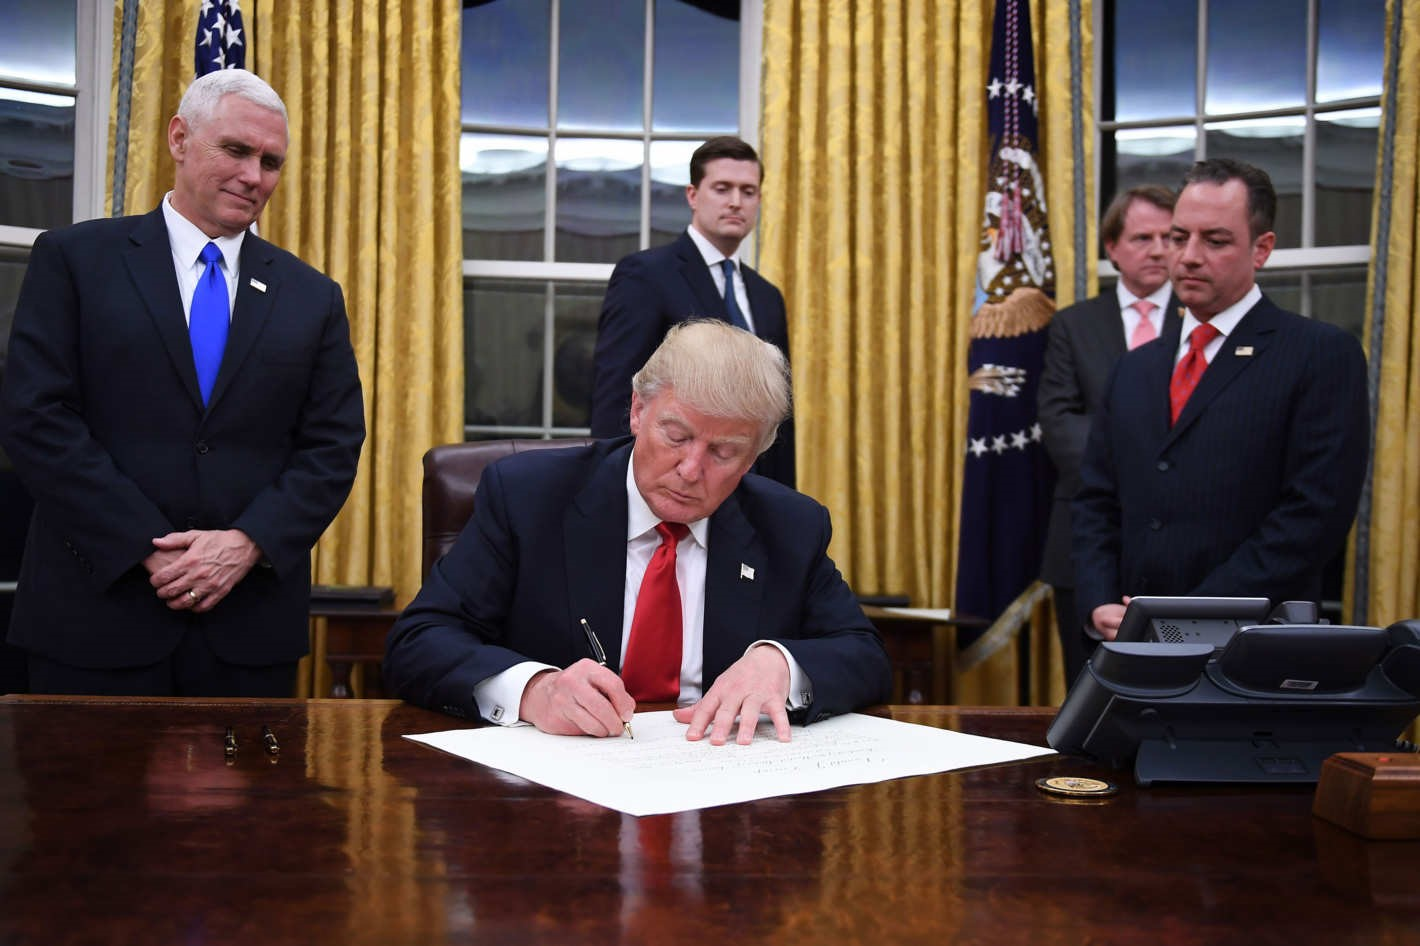 Donald Trump signs an Executive Order passing the Global Gag Rule.